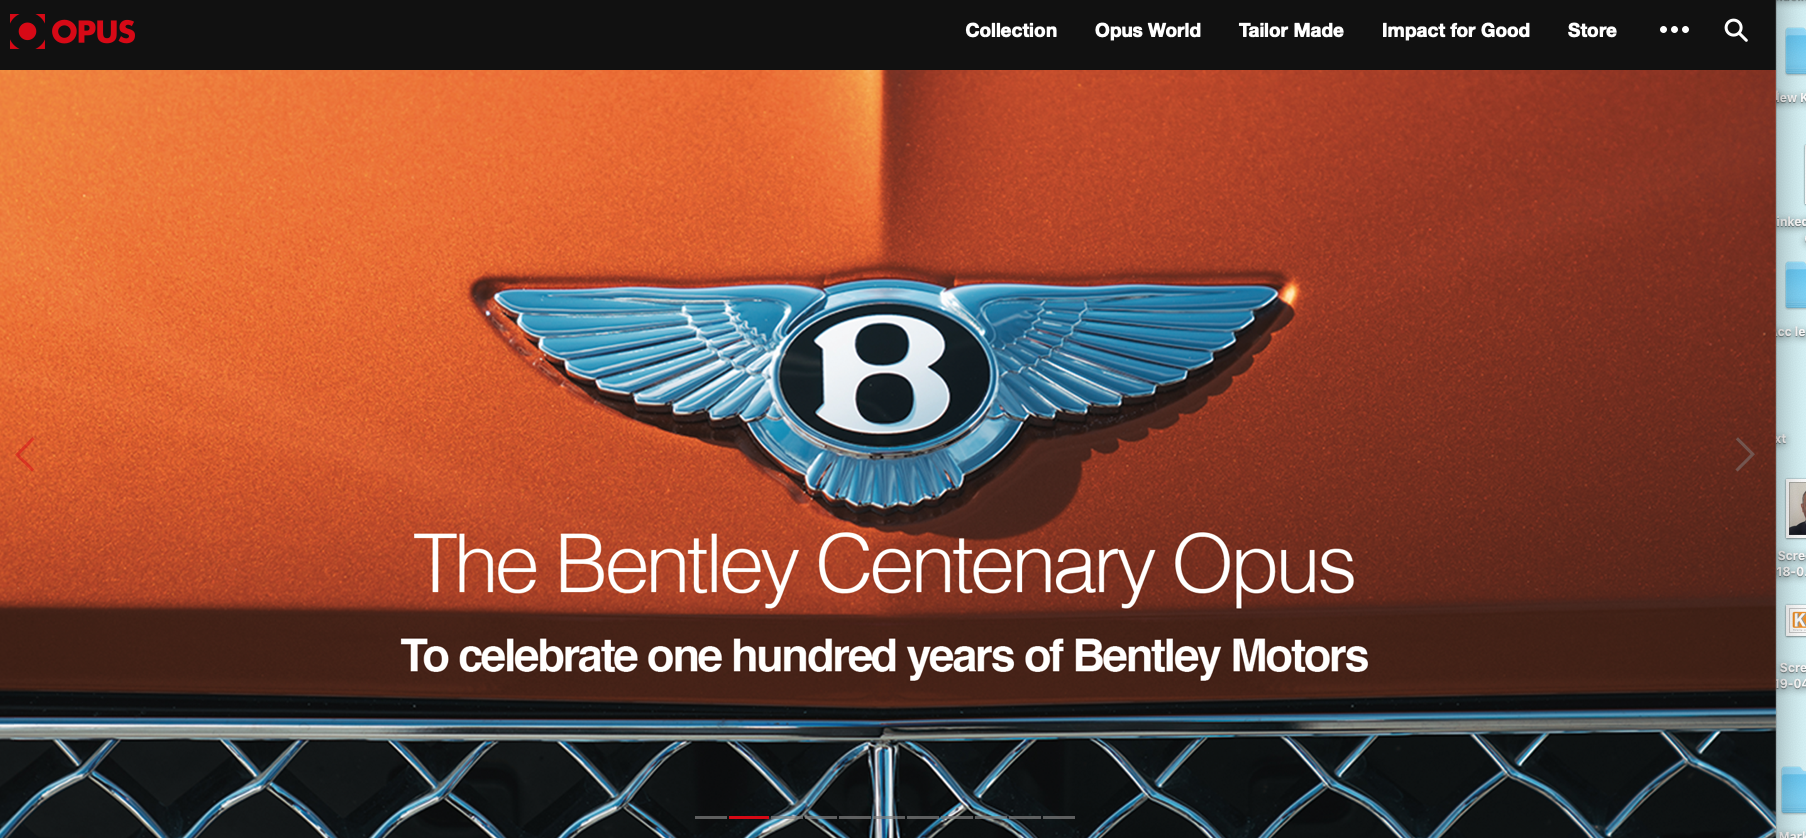 Designers use KAZ to produce the Bentley Opus